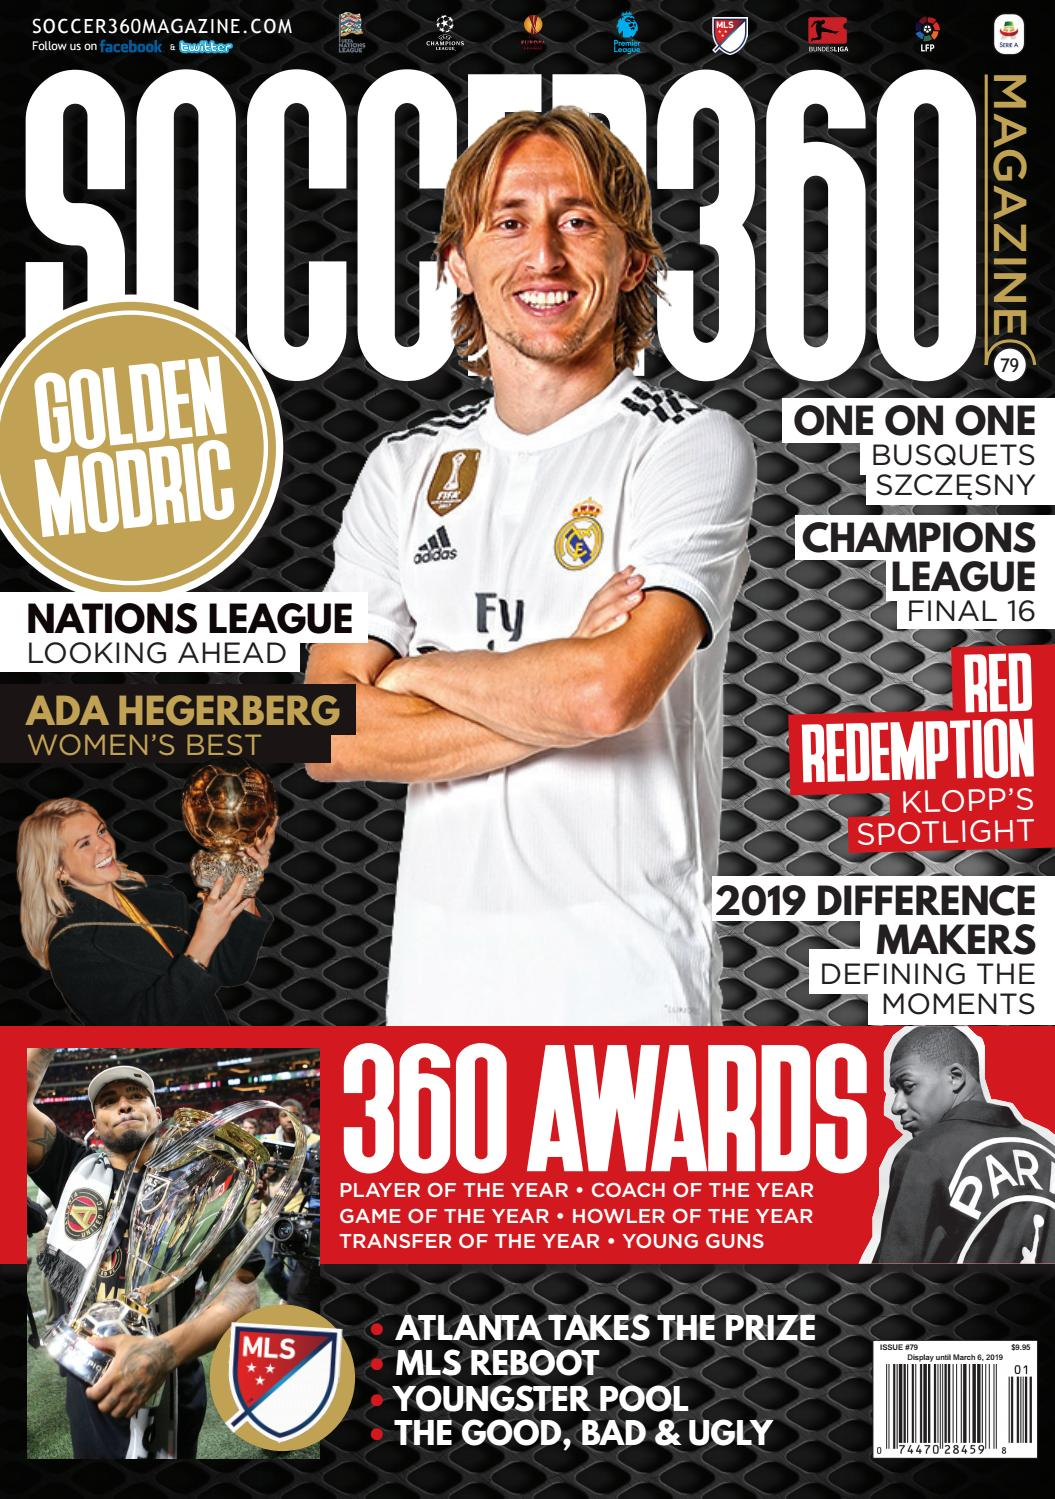 51d3ae4973c Soccer 360 Magazine Jan Feb 2019 Edition by Soccer 360 Magazine - issuu